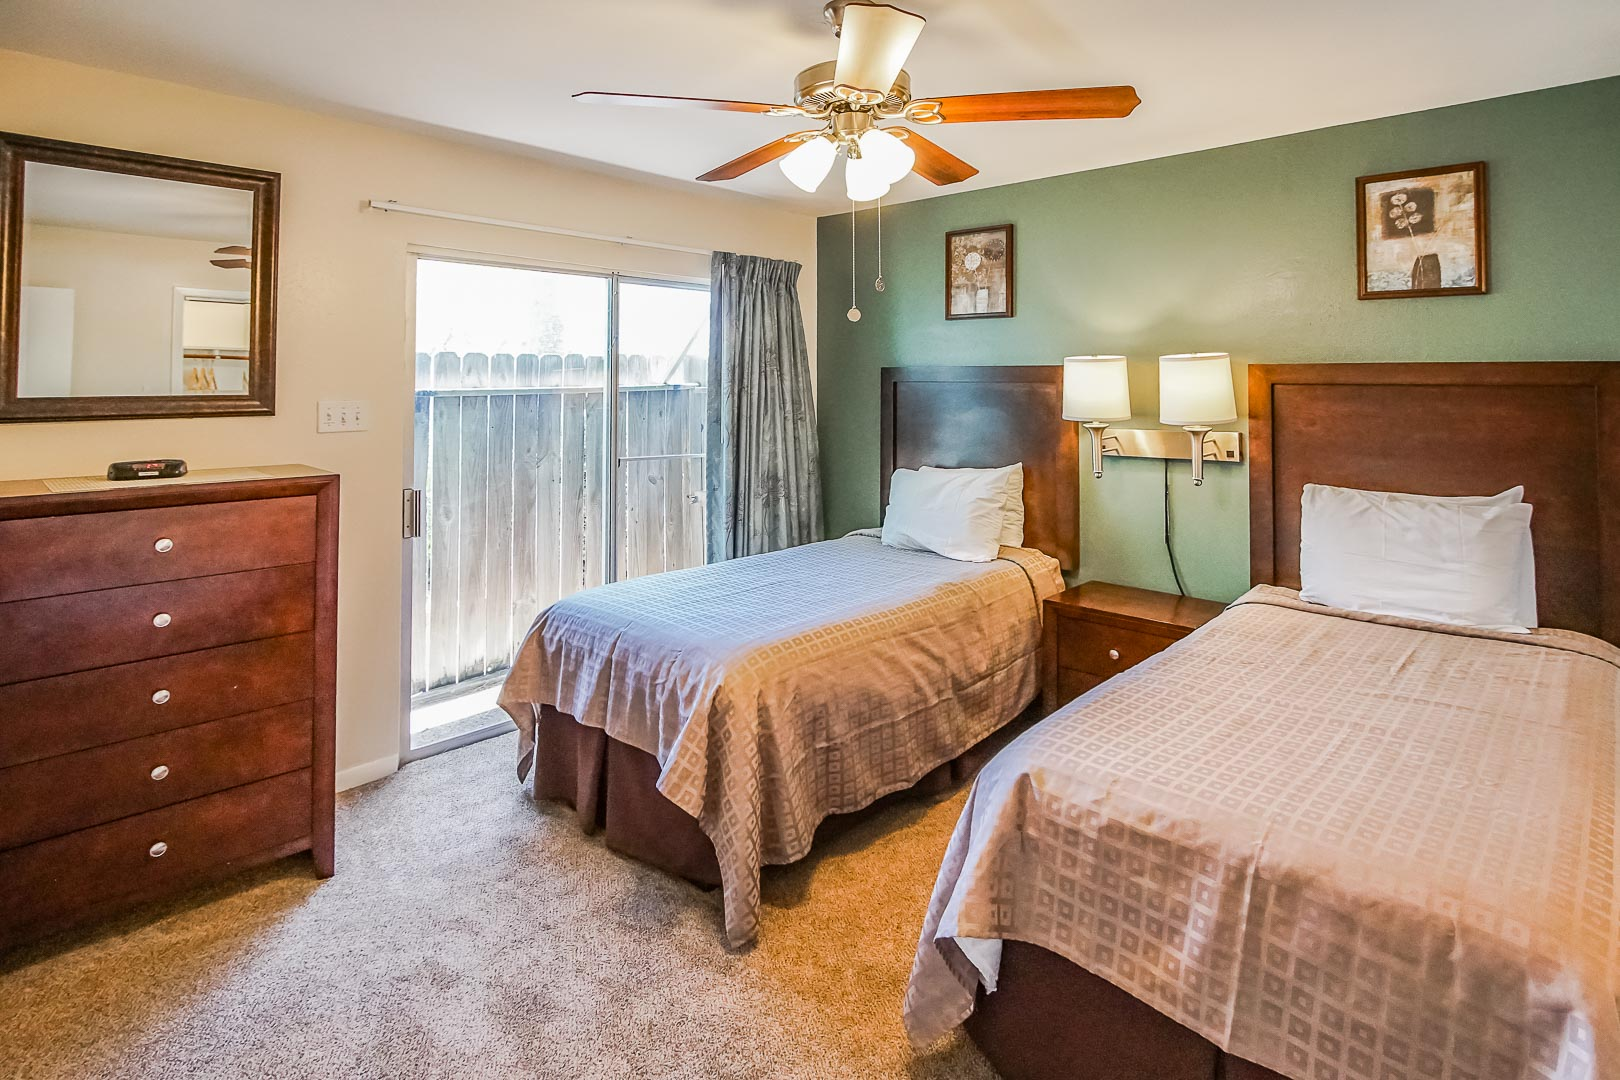 A two bedroom with double beds at VRI's Puente Vista in Texas.